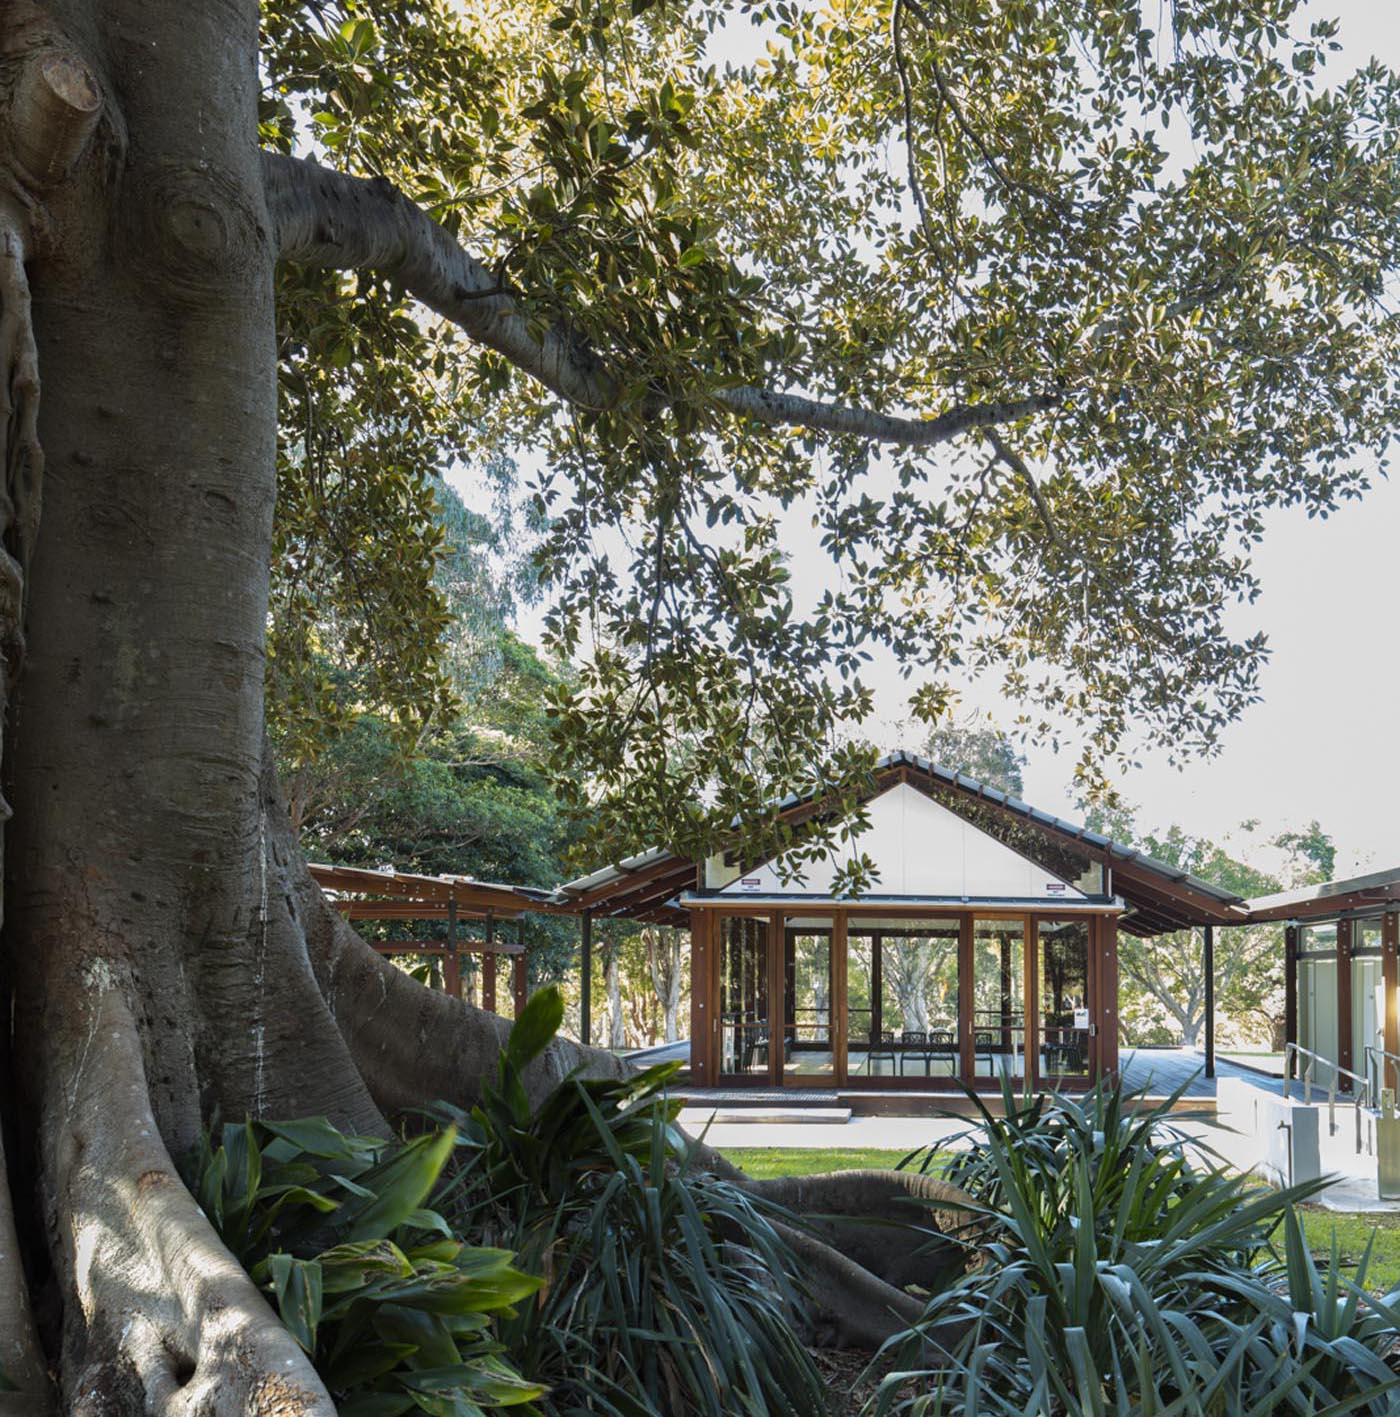 Cabarita Park Conservatory by award winning public architectural firm Sam Crawford Architects. The conservatory sits in harmony with its natural setting.